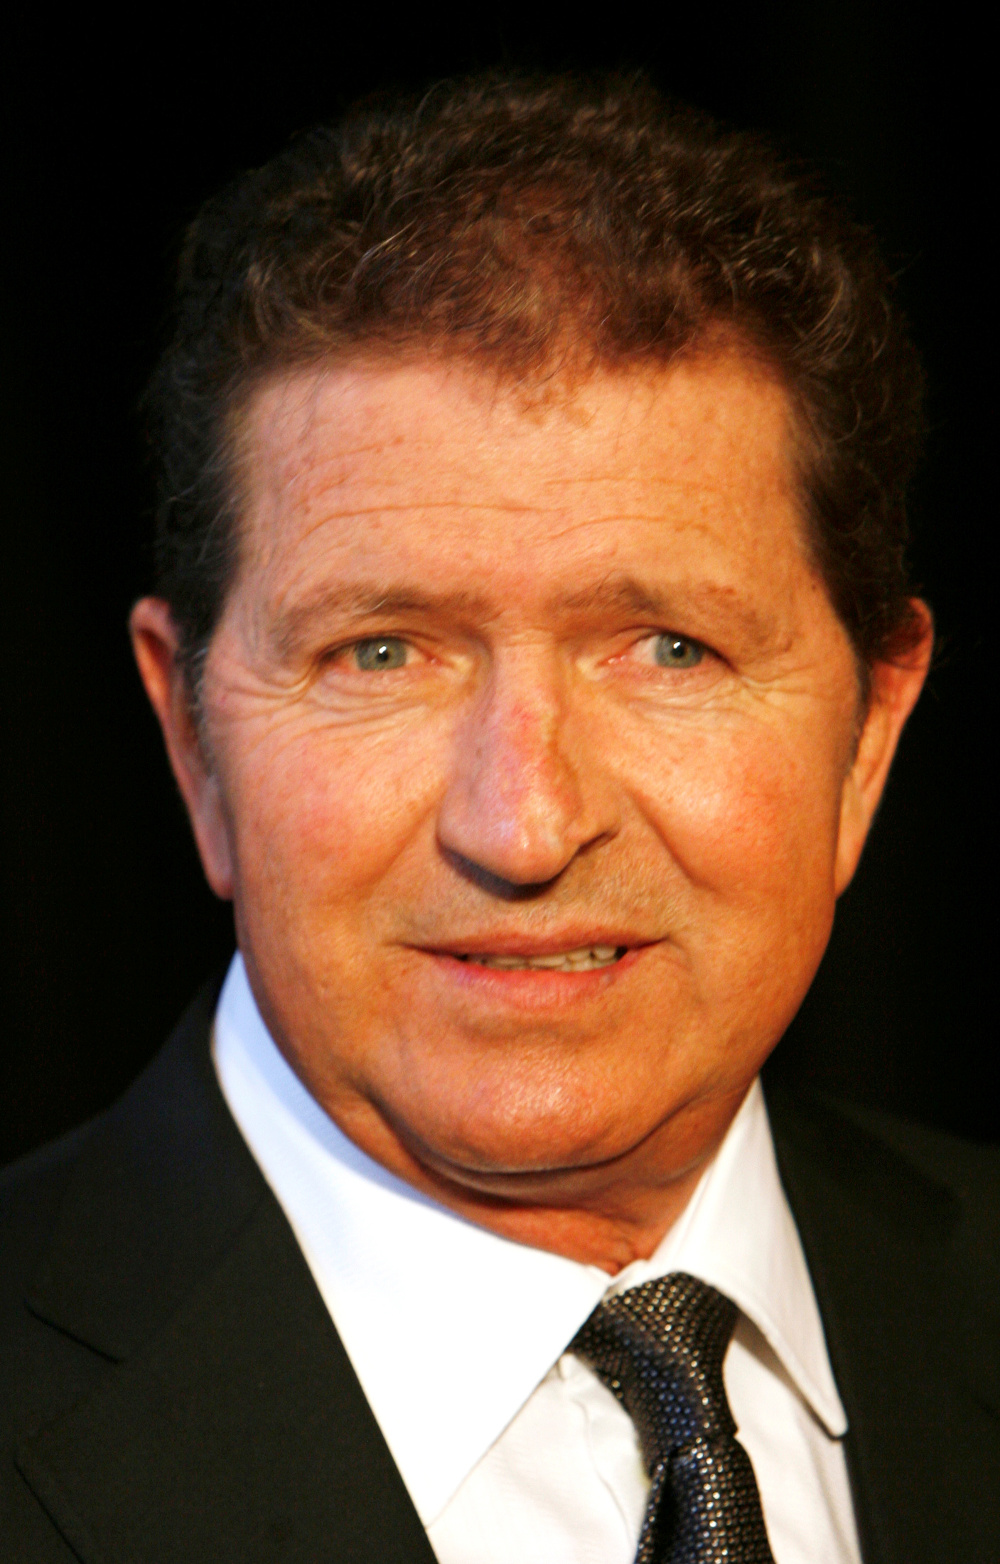 In a statement posted on Facebook late yesterday, manager Jim Morey said Mac Davis, whose family announced earlier this week that he was critically ill following heart surgery in Nashville, Tennessee, was surrounded by his wife Lise and three sons when he died. — Reuters pic